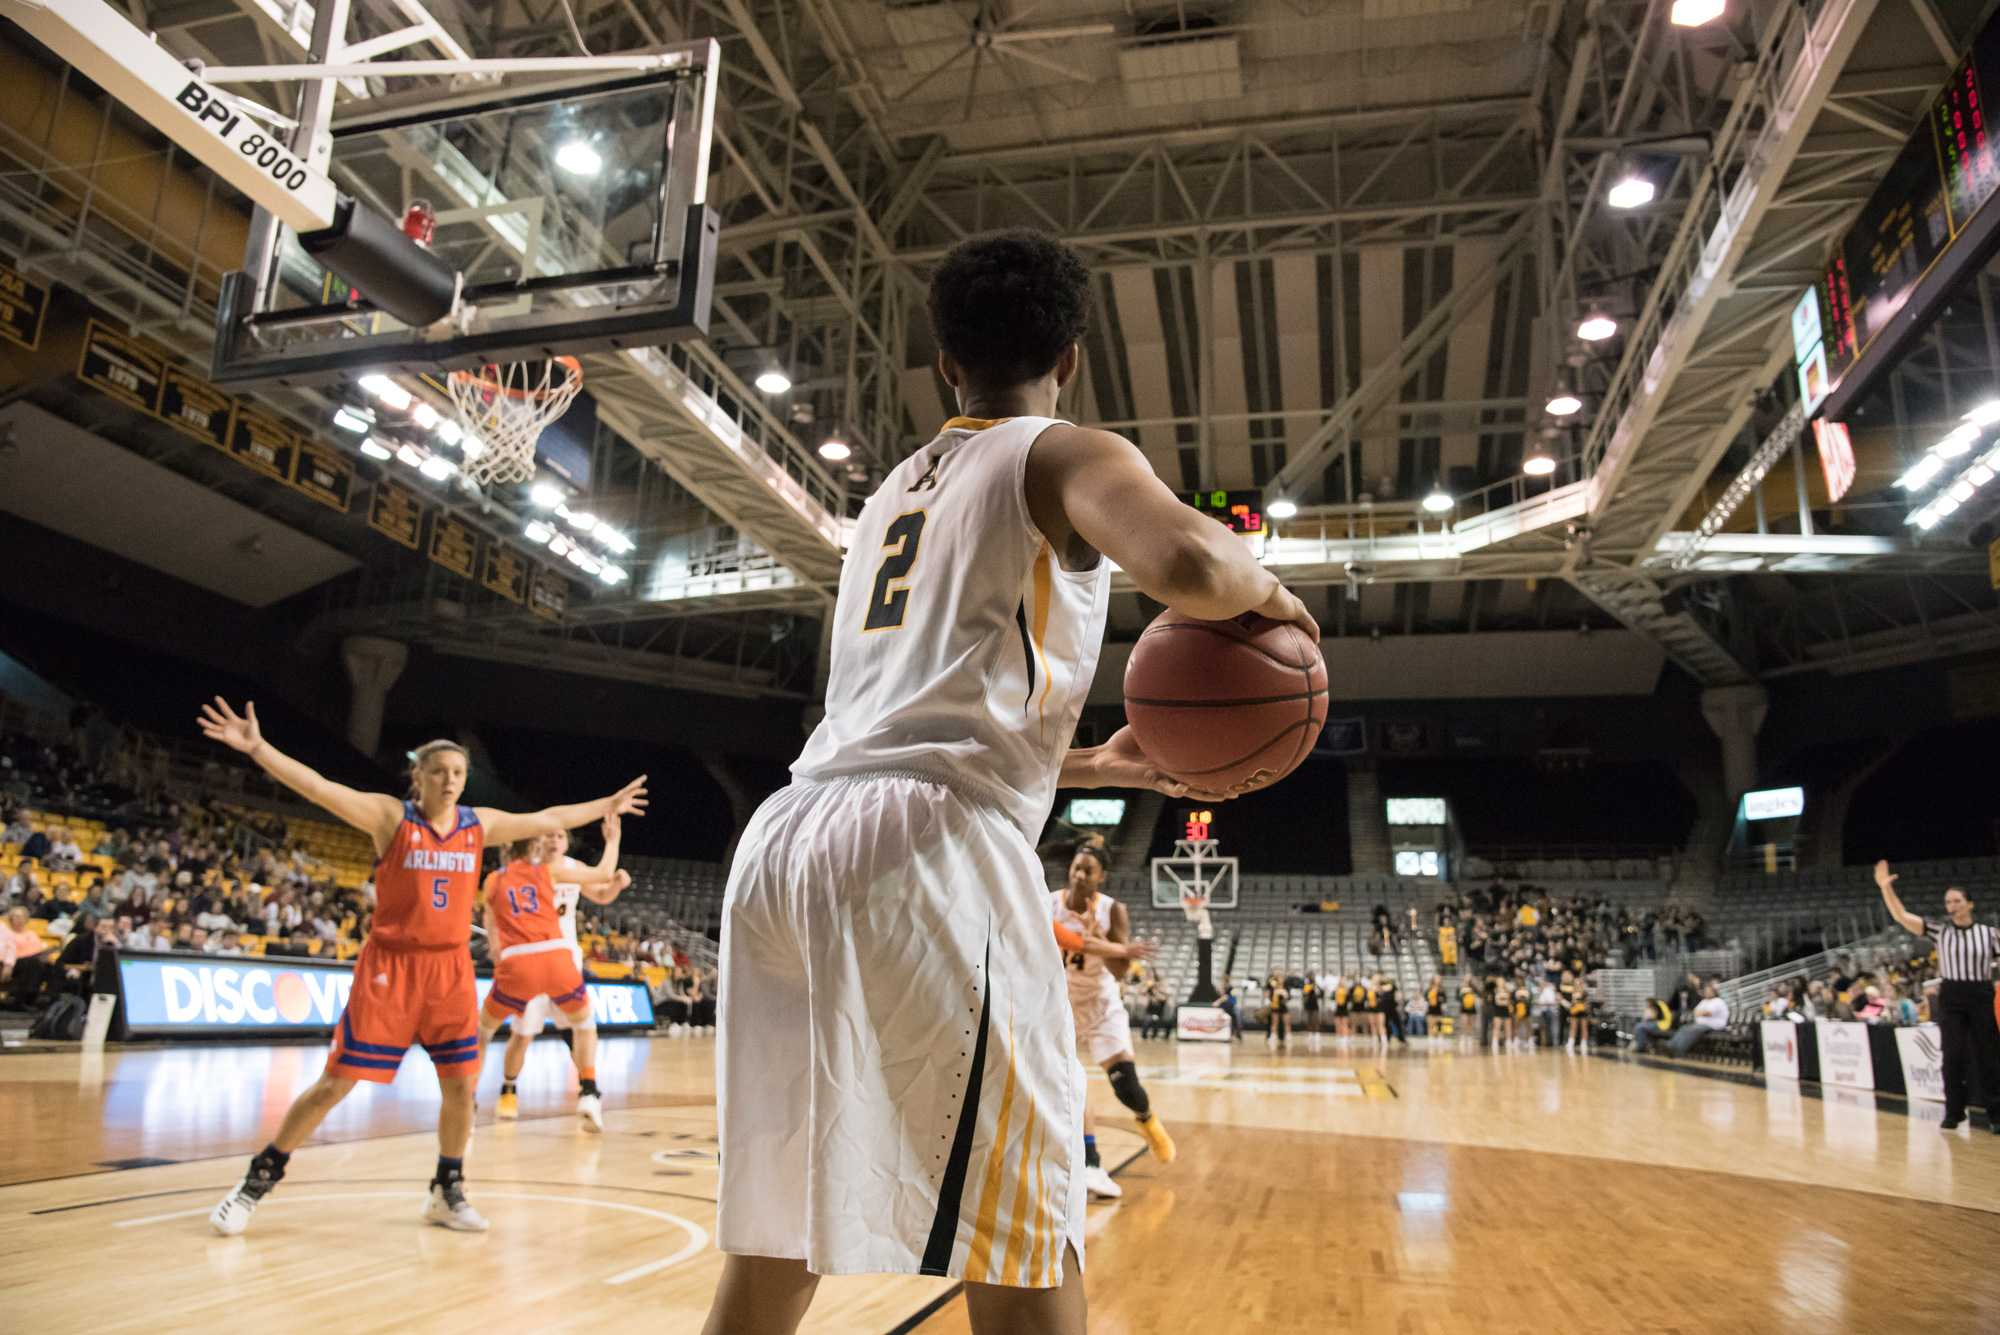 Sophomore guard Q. Murray, looks for an open player to pass to during the game against UT Arlington. The Mountaineers lost the the Mavericks with the final score being 62-73.